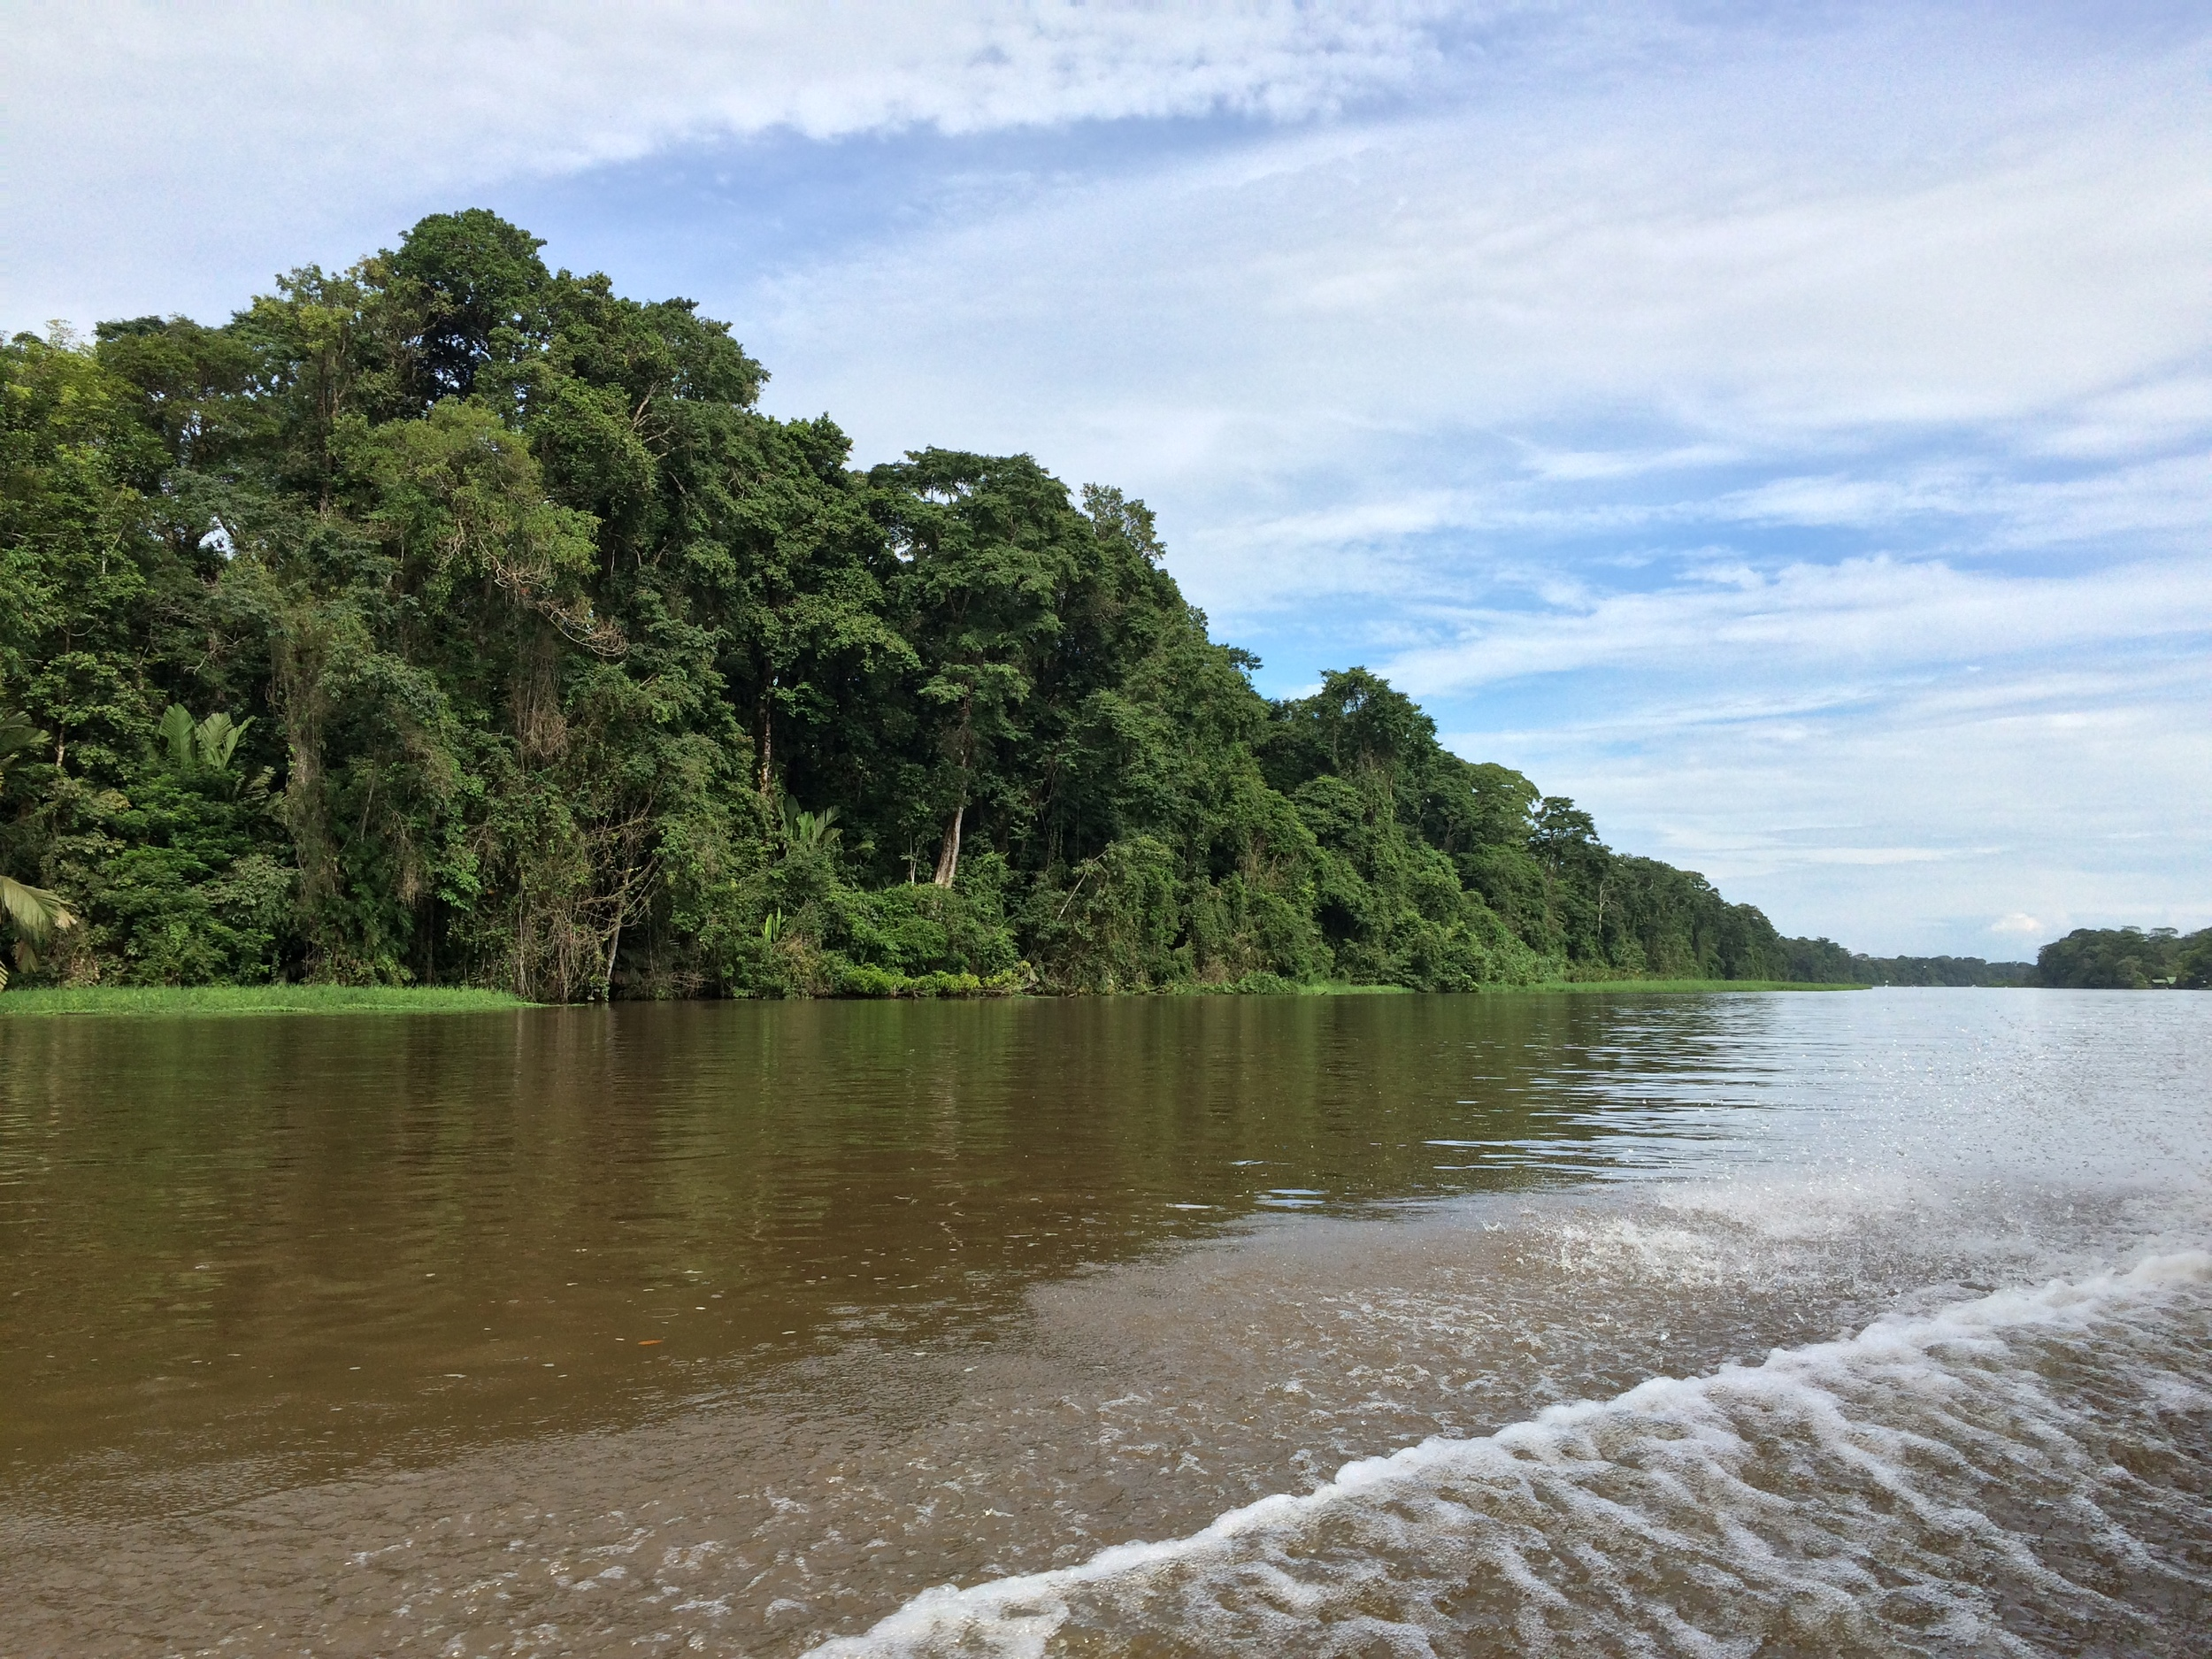 The region around Tortuguero is honeycombed with a number of canals.